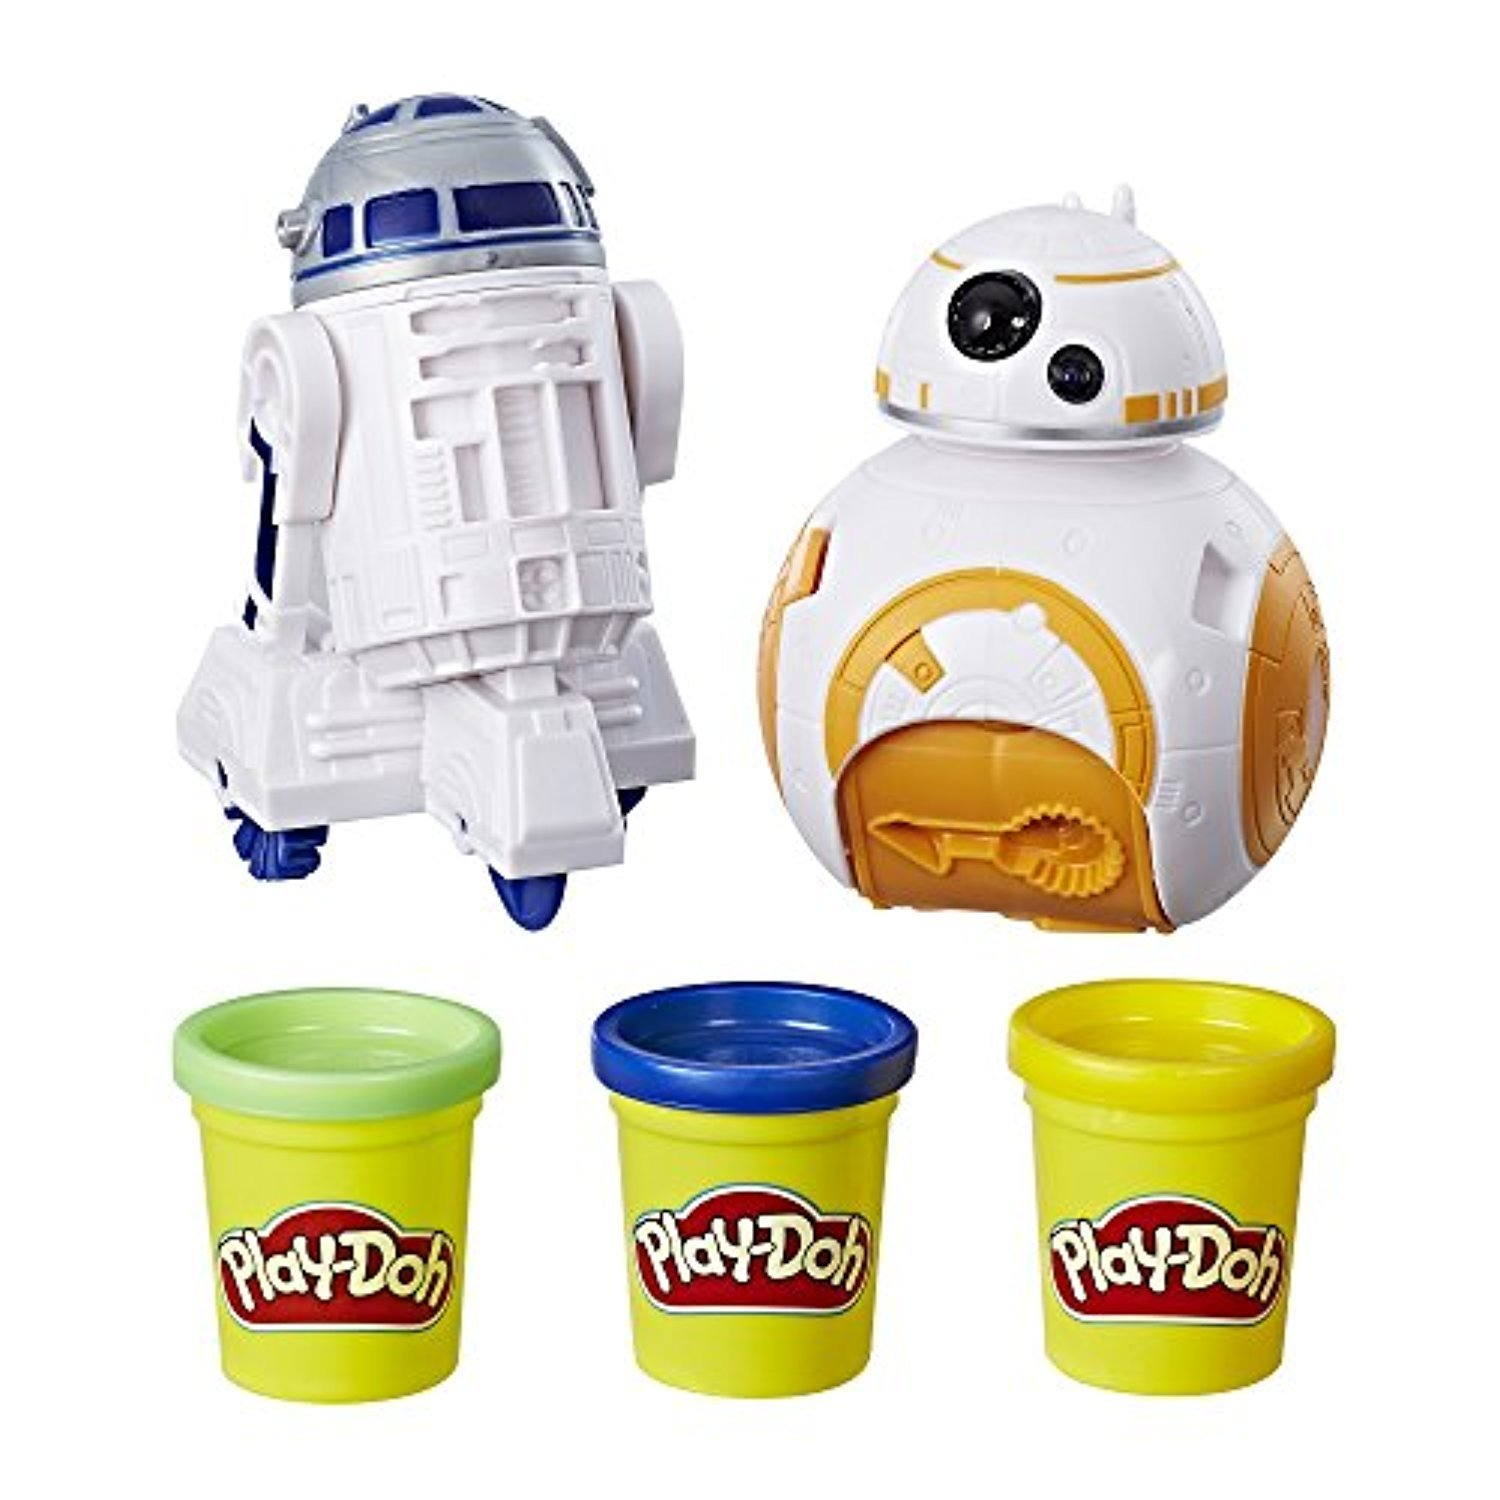 Play-Doh Star Wars BB-8 and R2-D2